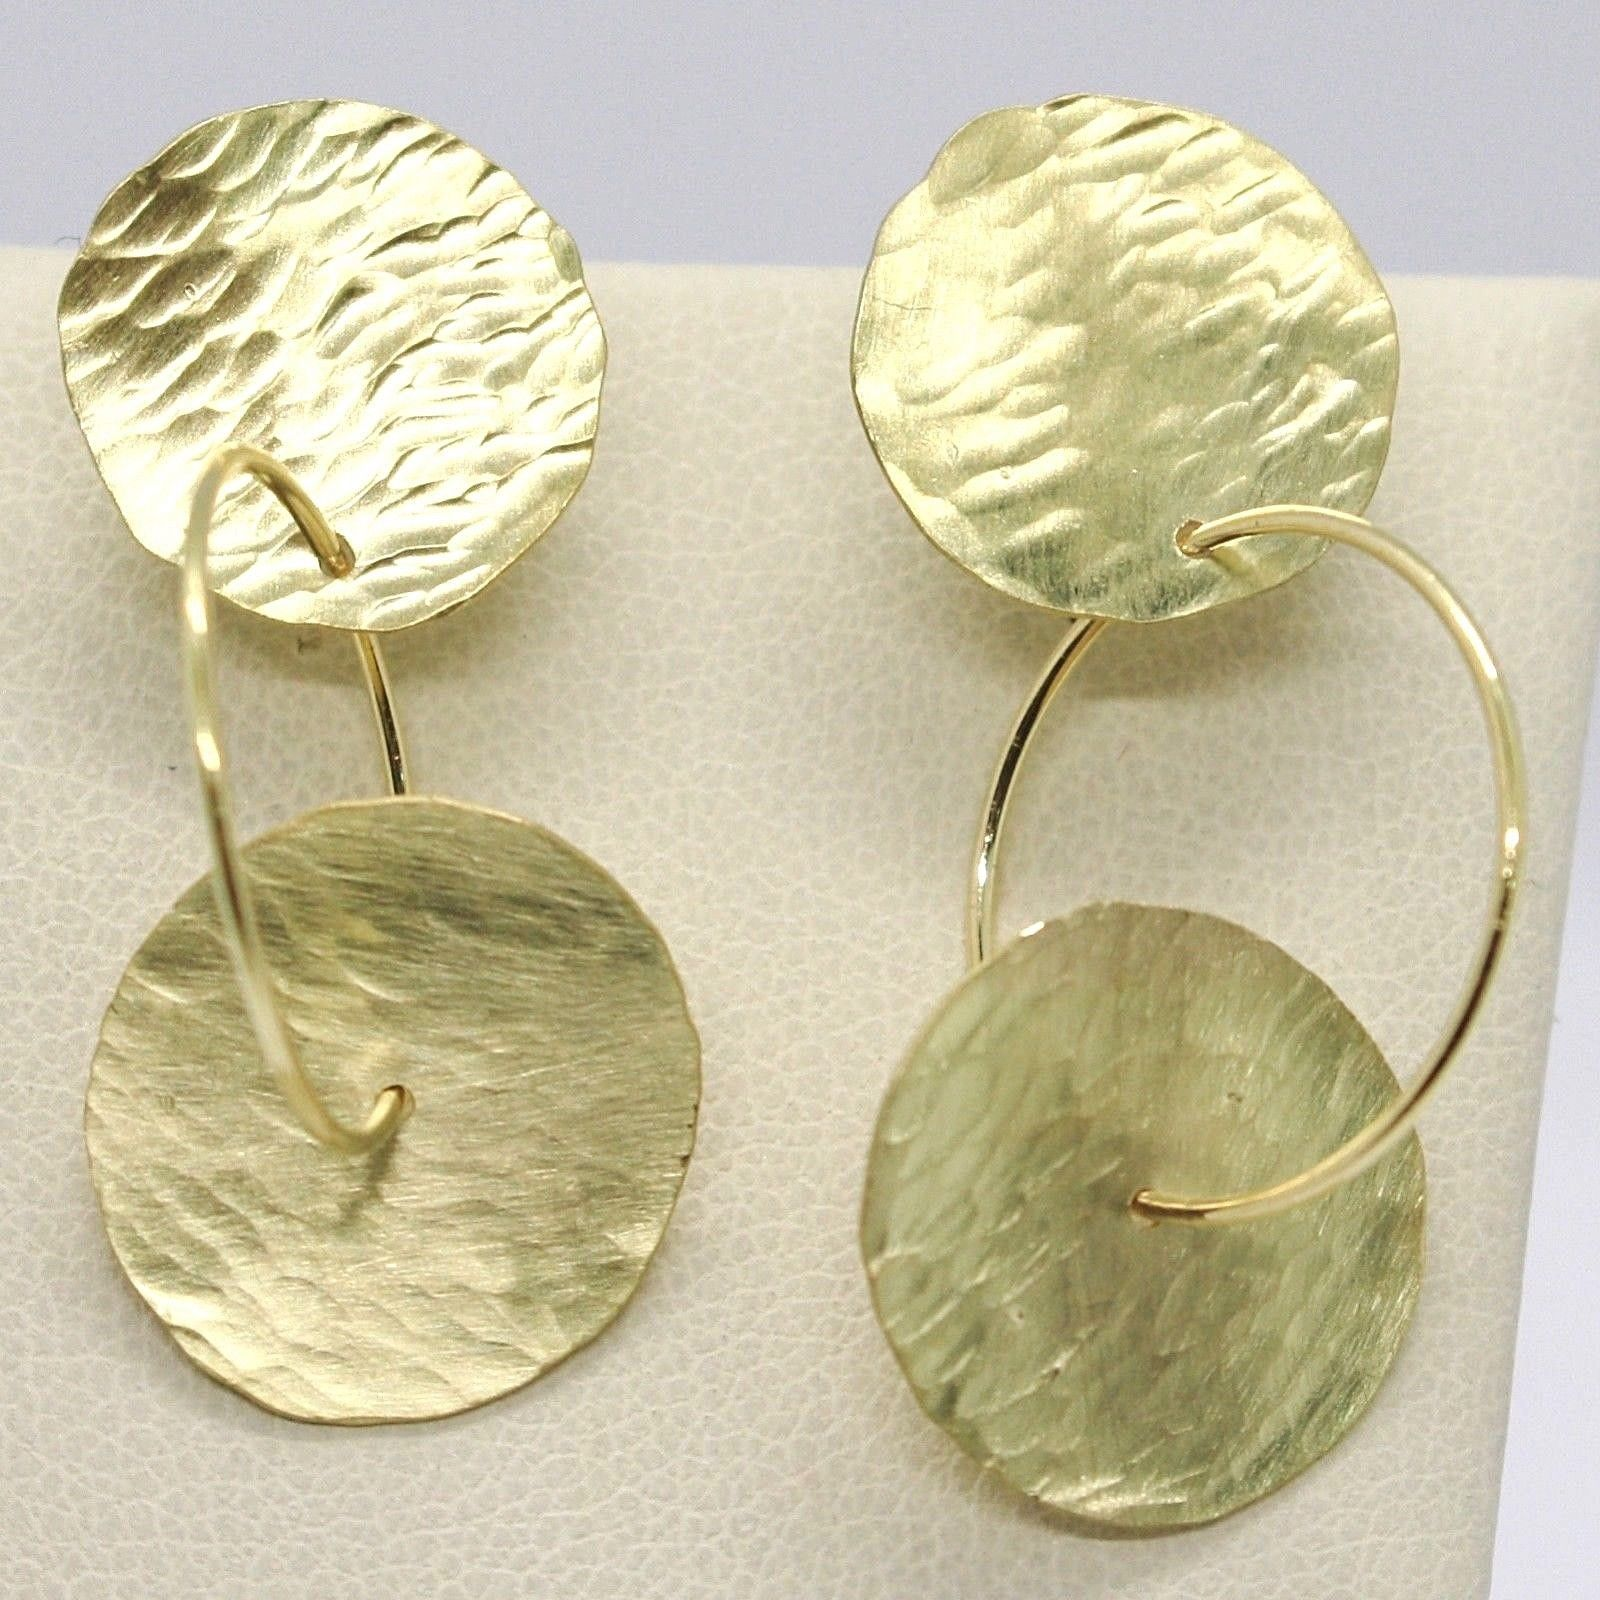 DROP EARRINGS YELLOW GOLD 750 18K, DOUBLE DISCS HAMMERED, ITALY MADE